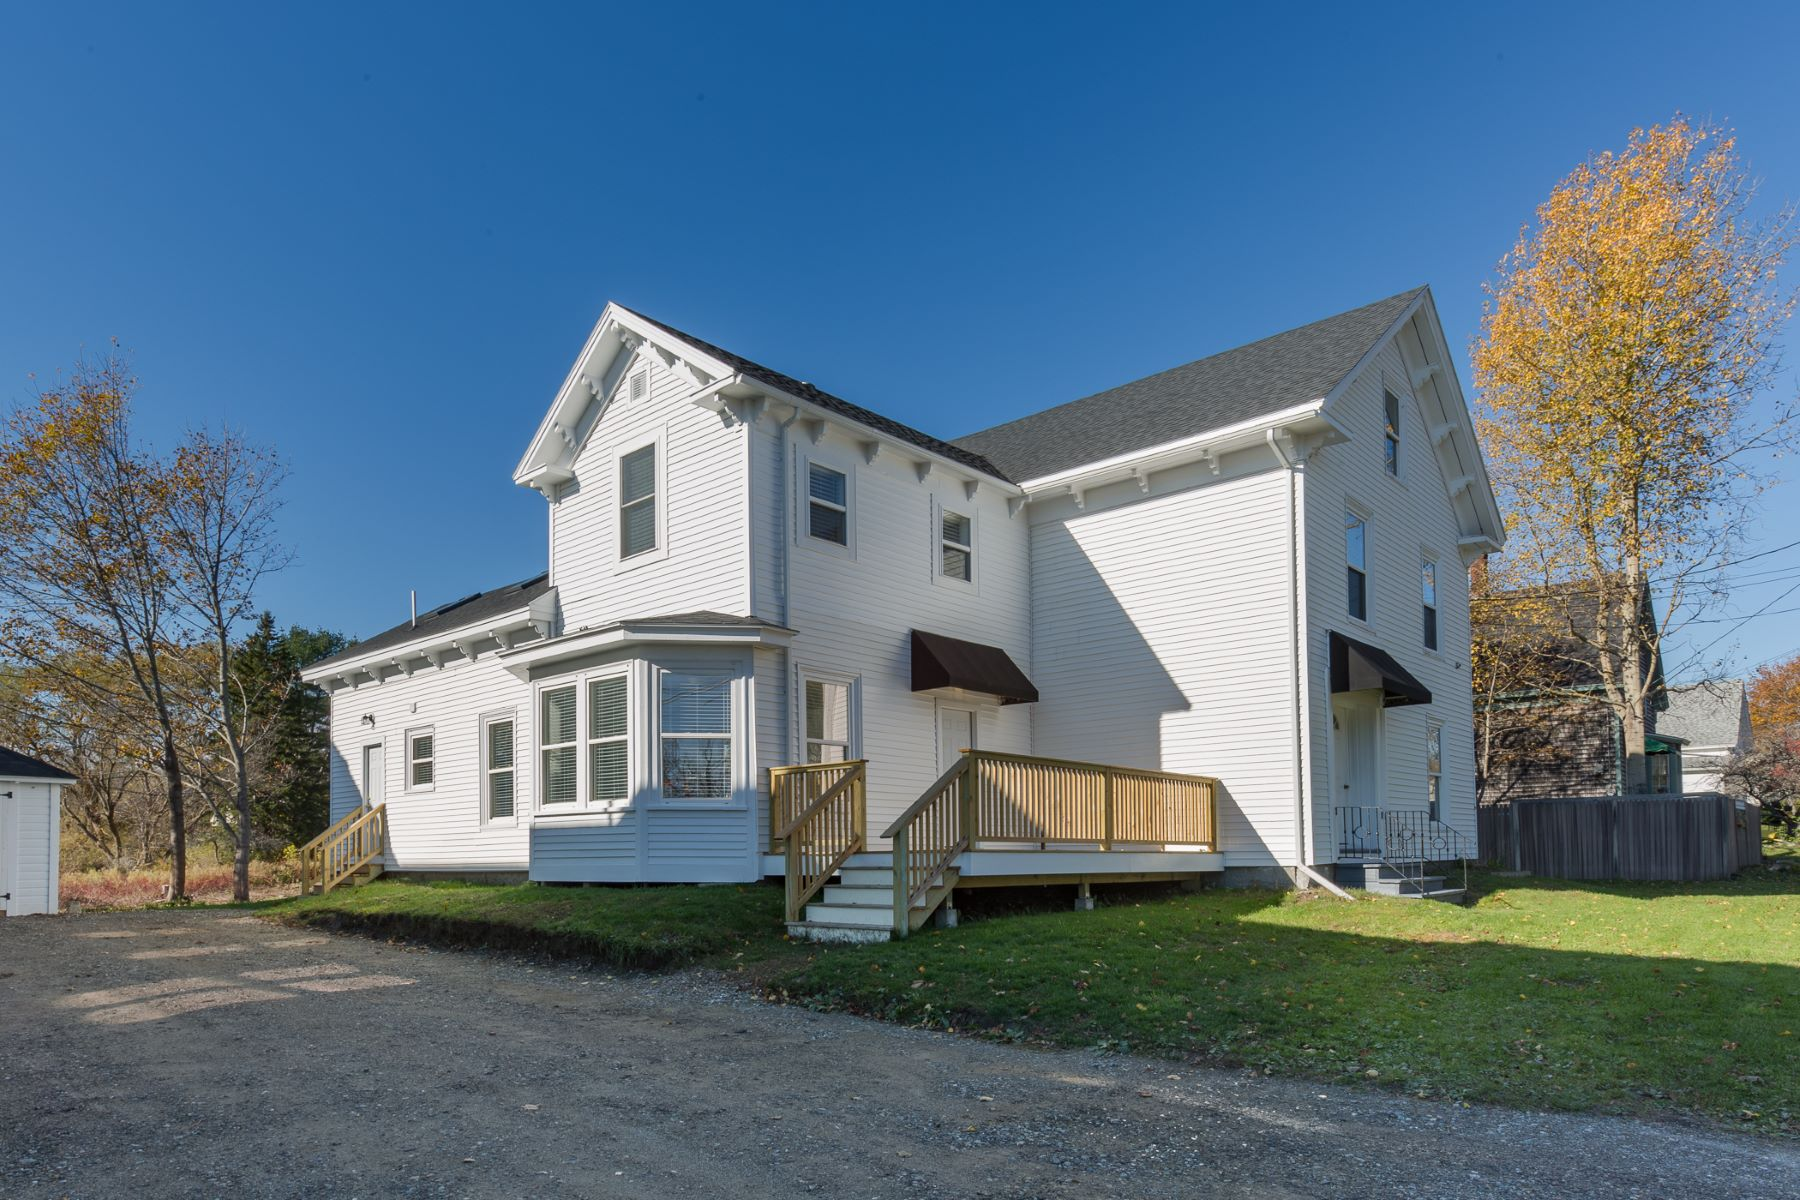 Multi-Family Home for Sale at 158 North Main Street 158 North Main Street Rockland, Maine 04841 United States